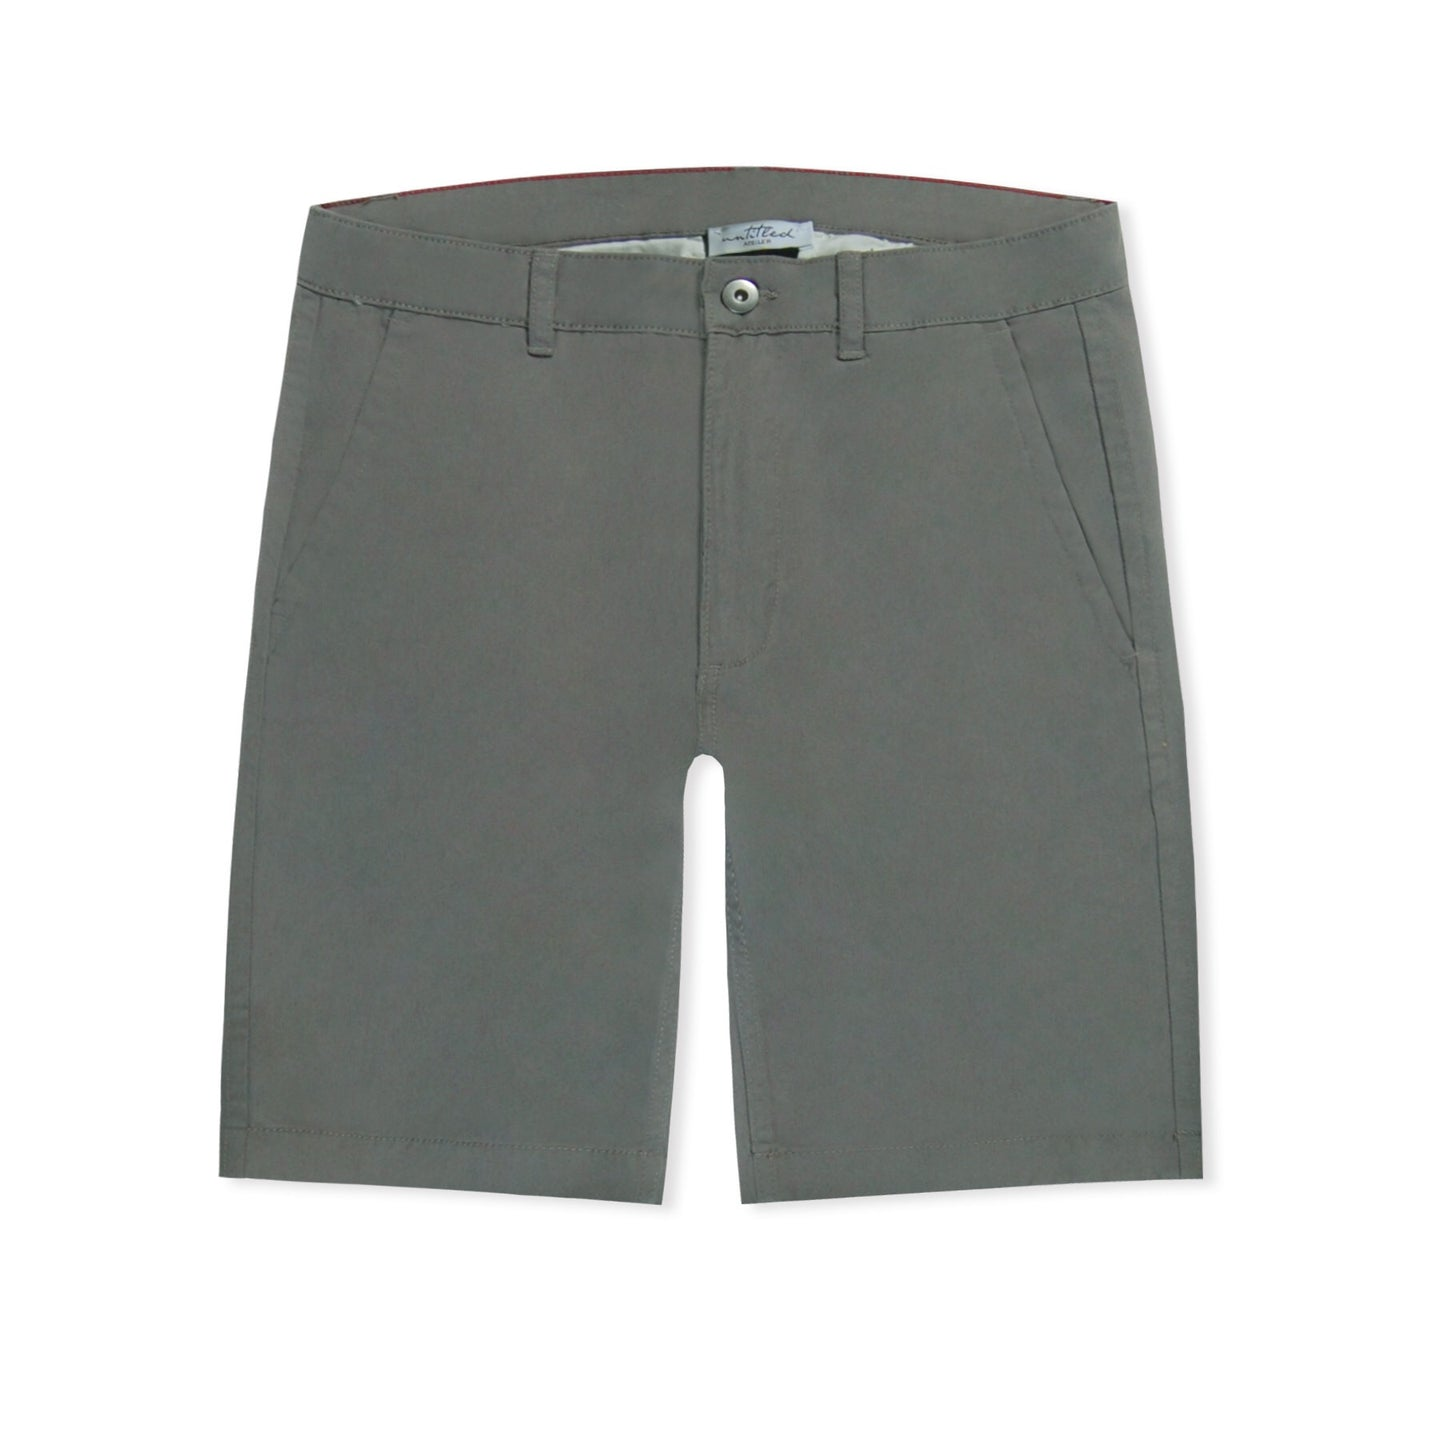 Grey Untitled Atelier Chino Shorts